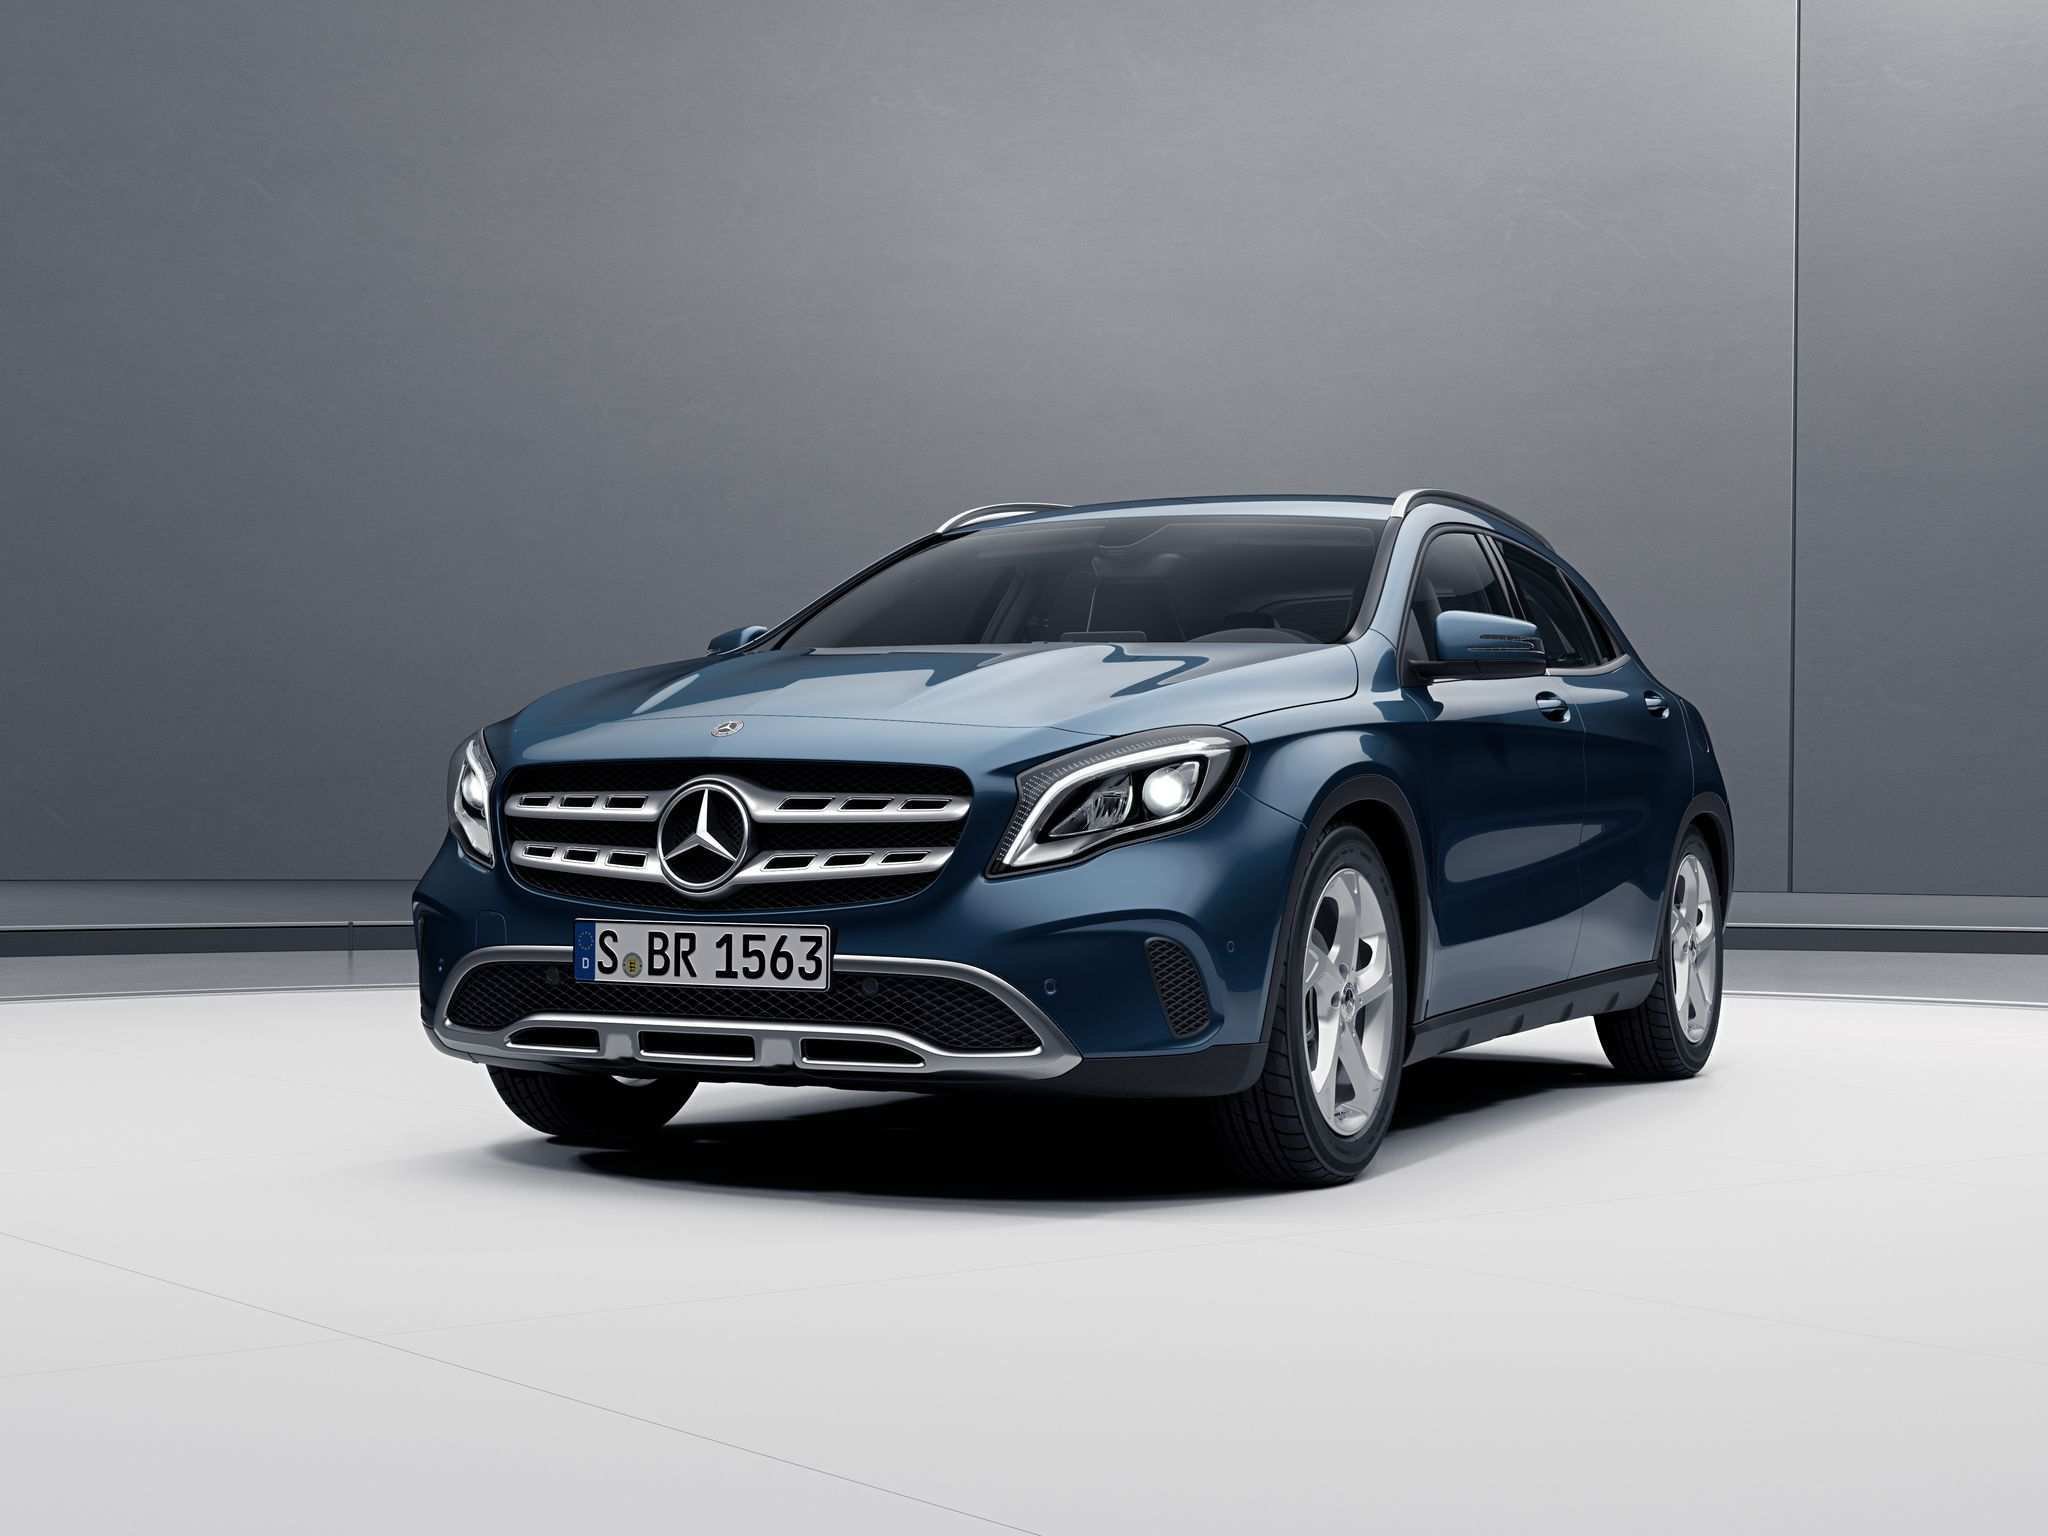 99 The Best Mercedes 2019 Gla Research New